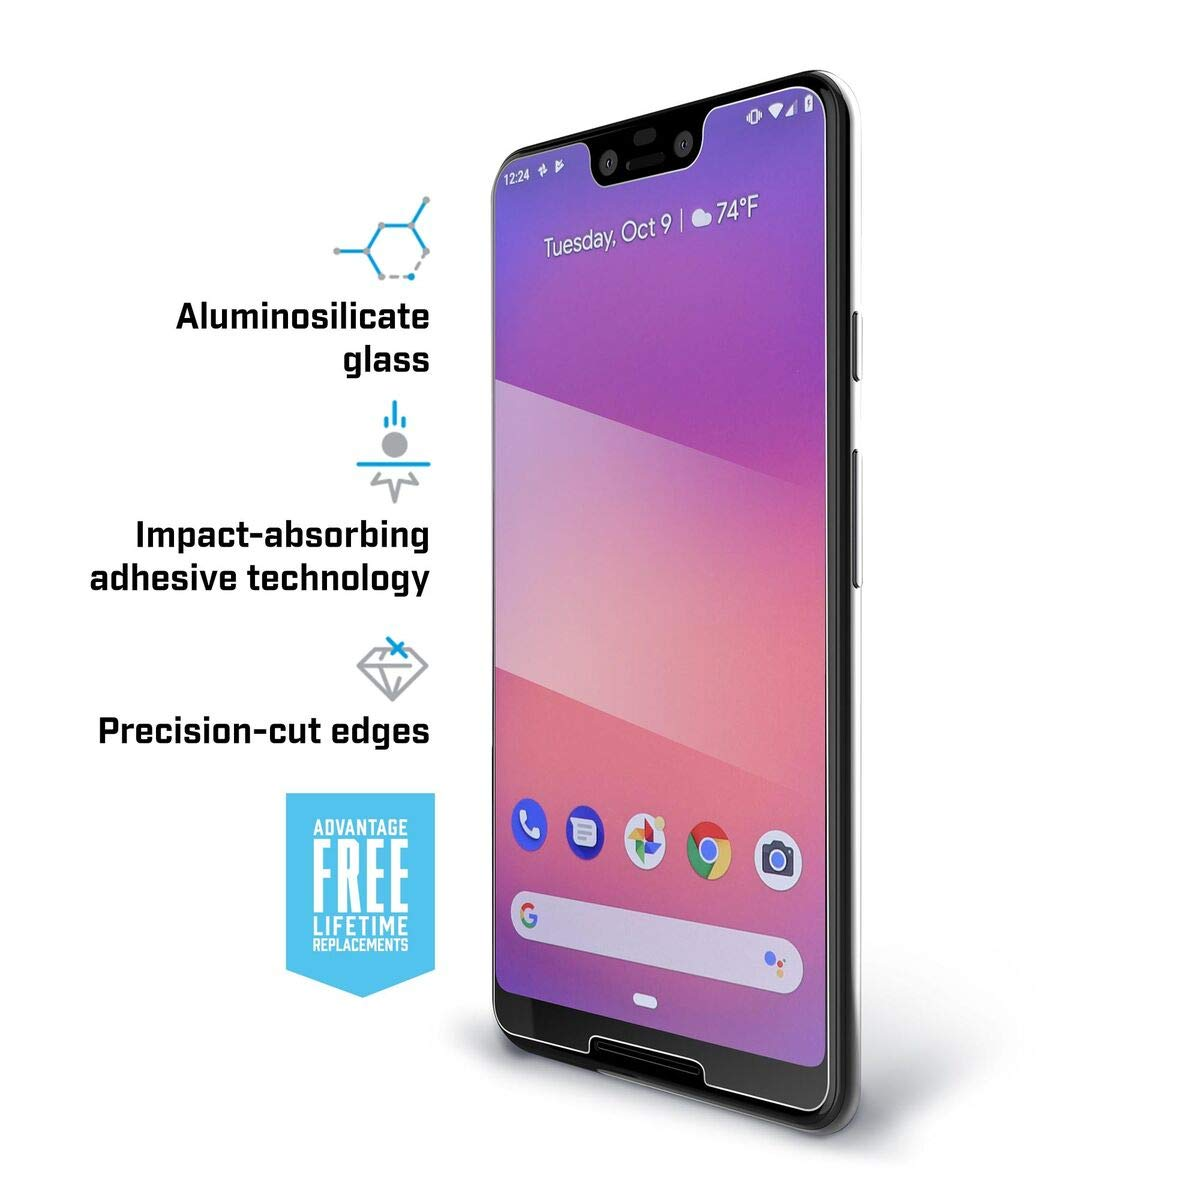 Pure 2 Glass Screen Protector for Google Pixel 3 XL by BodyGuardz (Image #2)